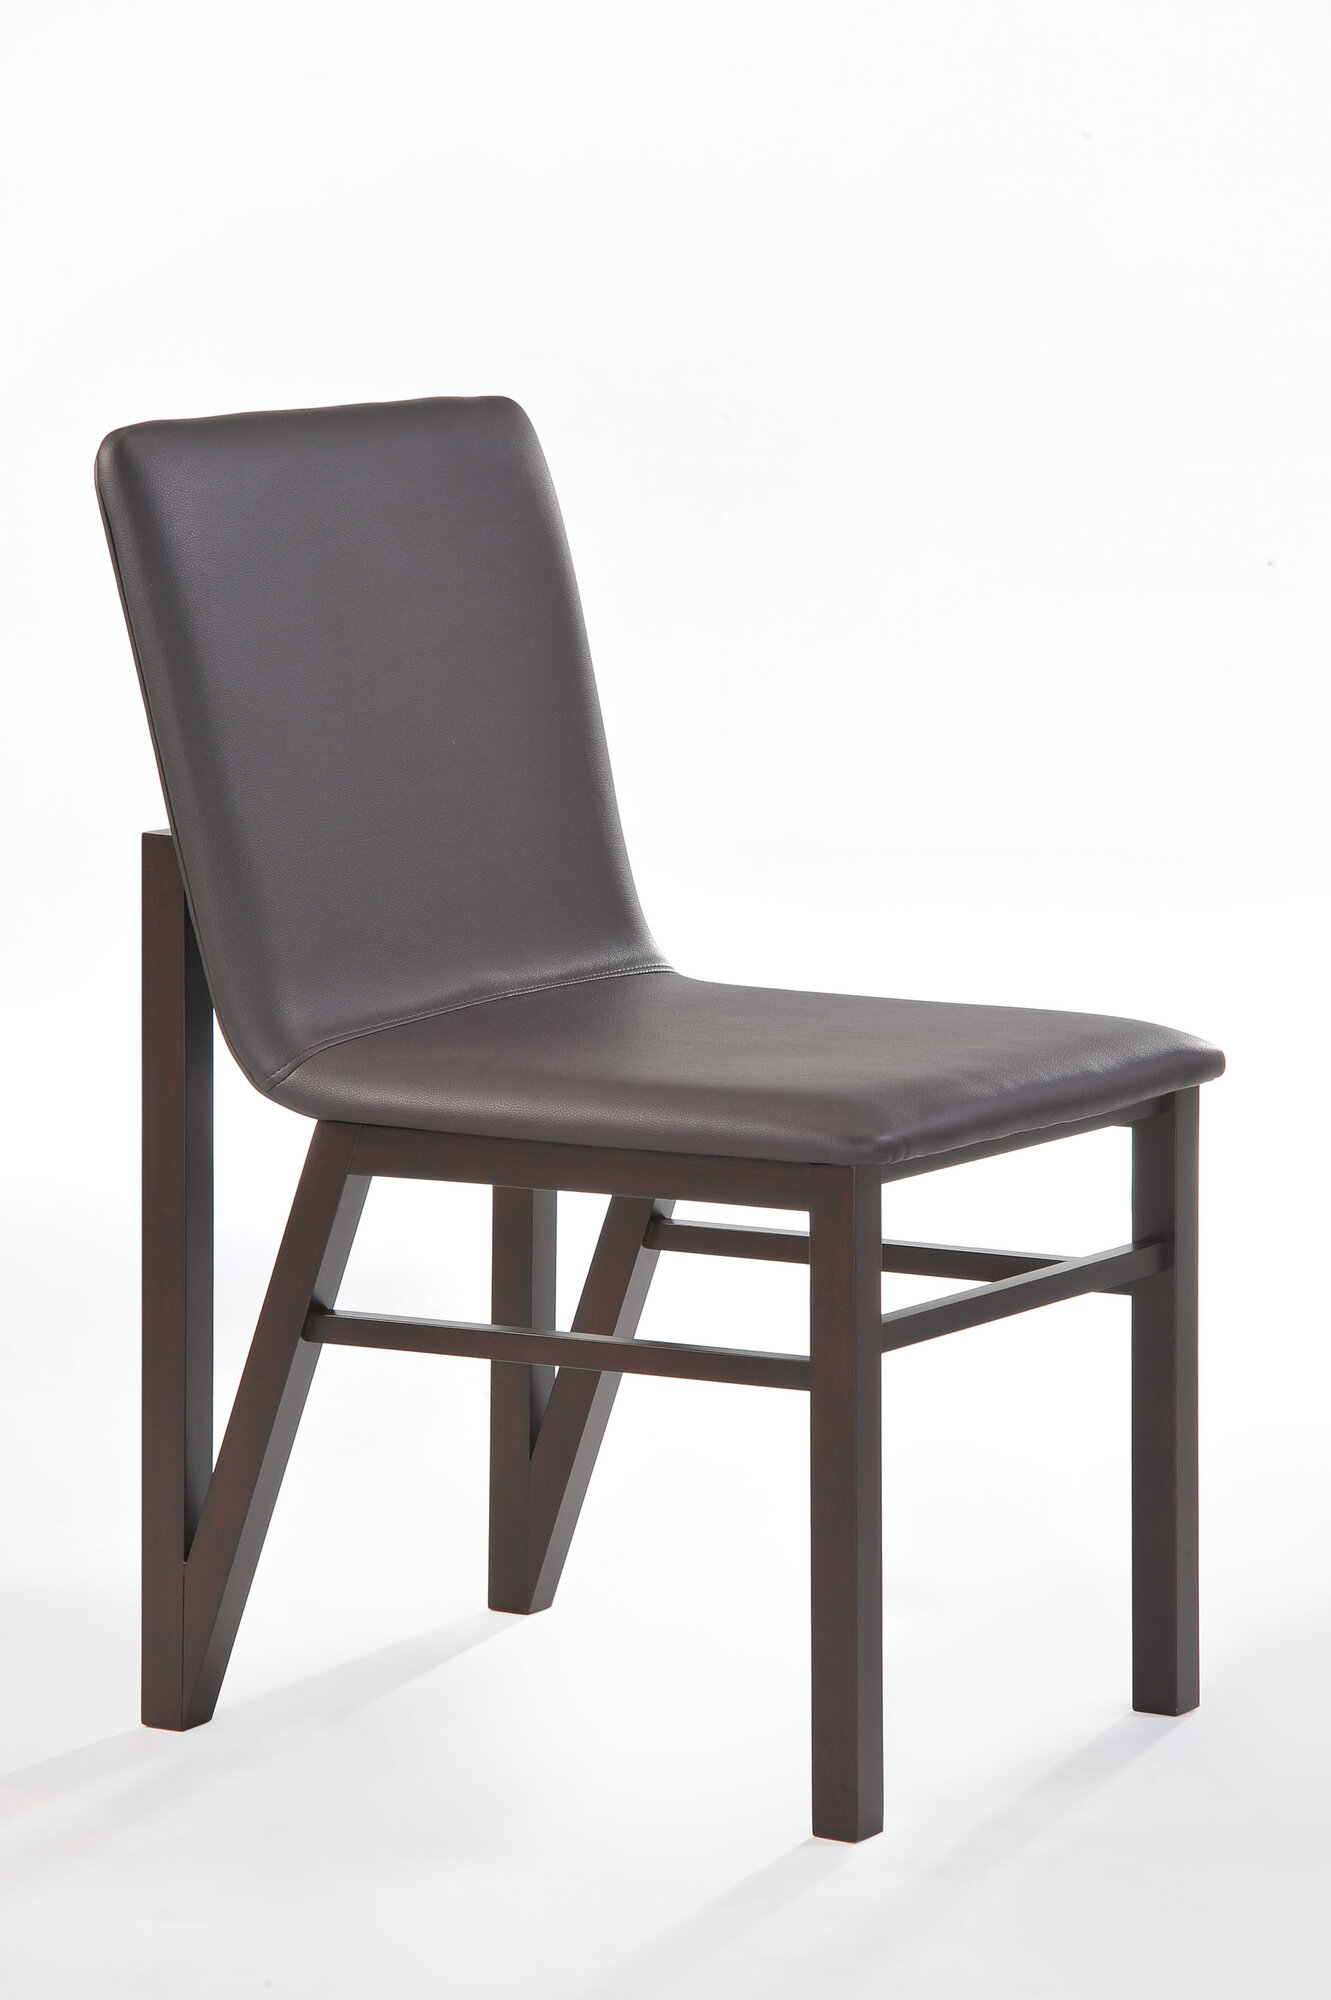 New spec inc cafe genuine leather upholstered dining chair for Genuine leather dining room chairs